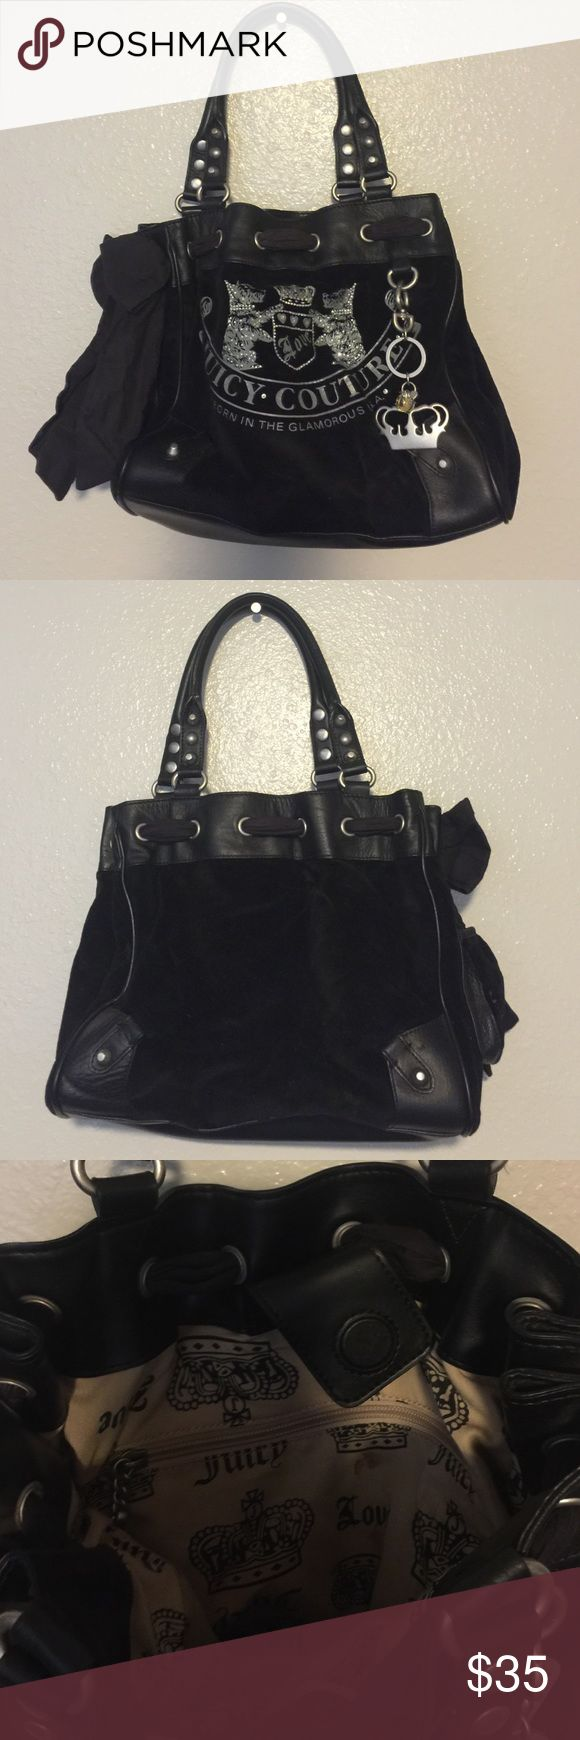 Juicy Couture Purse Juicy Couture black purse with crown and rhinestone keychain Juicy Couture Bags